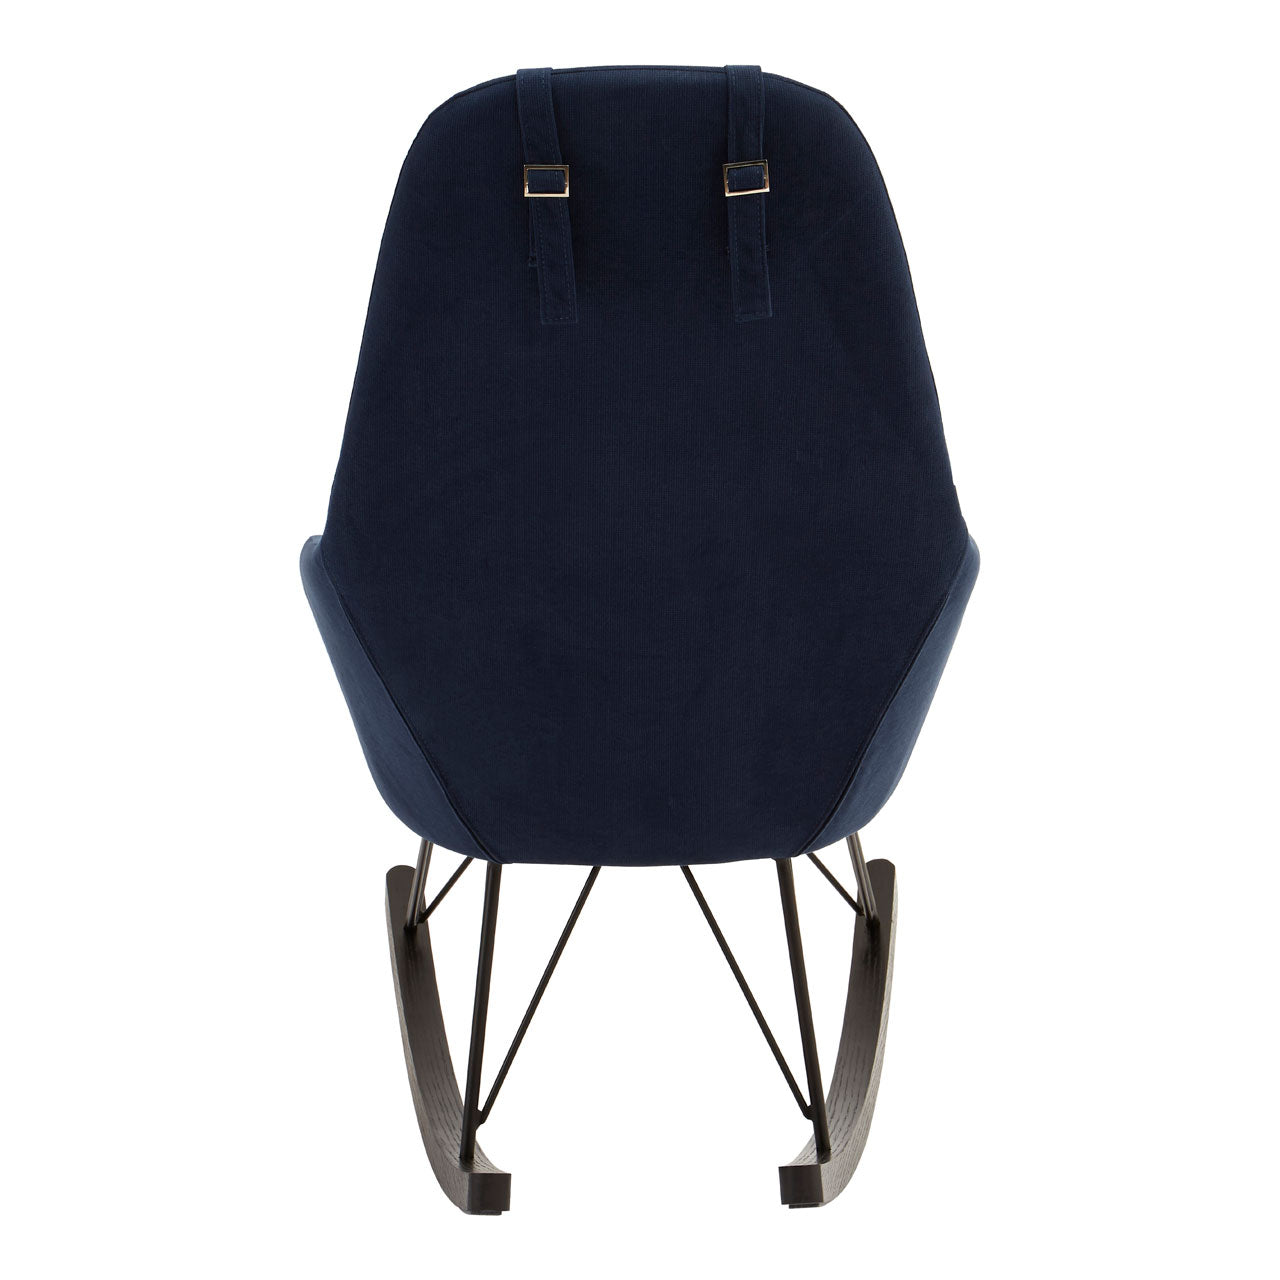 Kolding Blue Fabric Chair